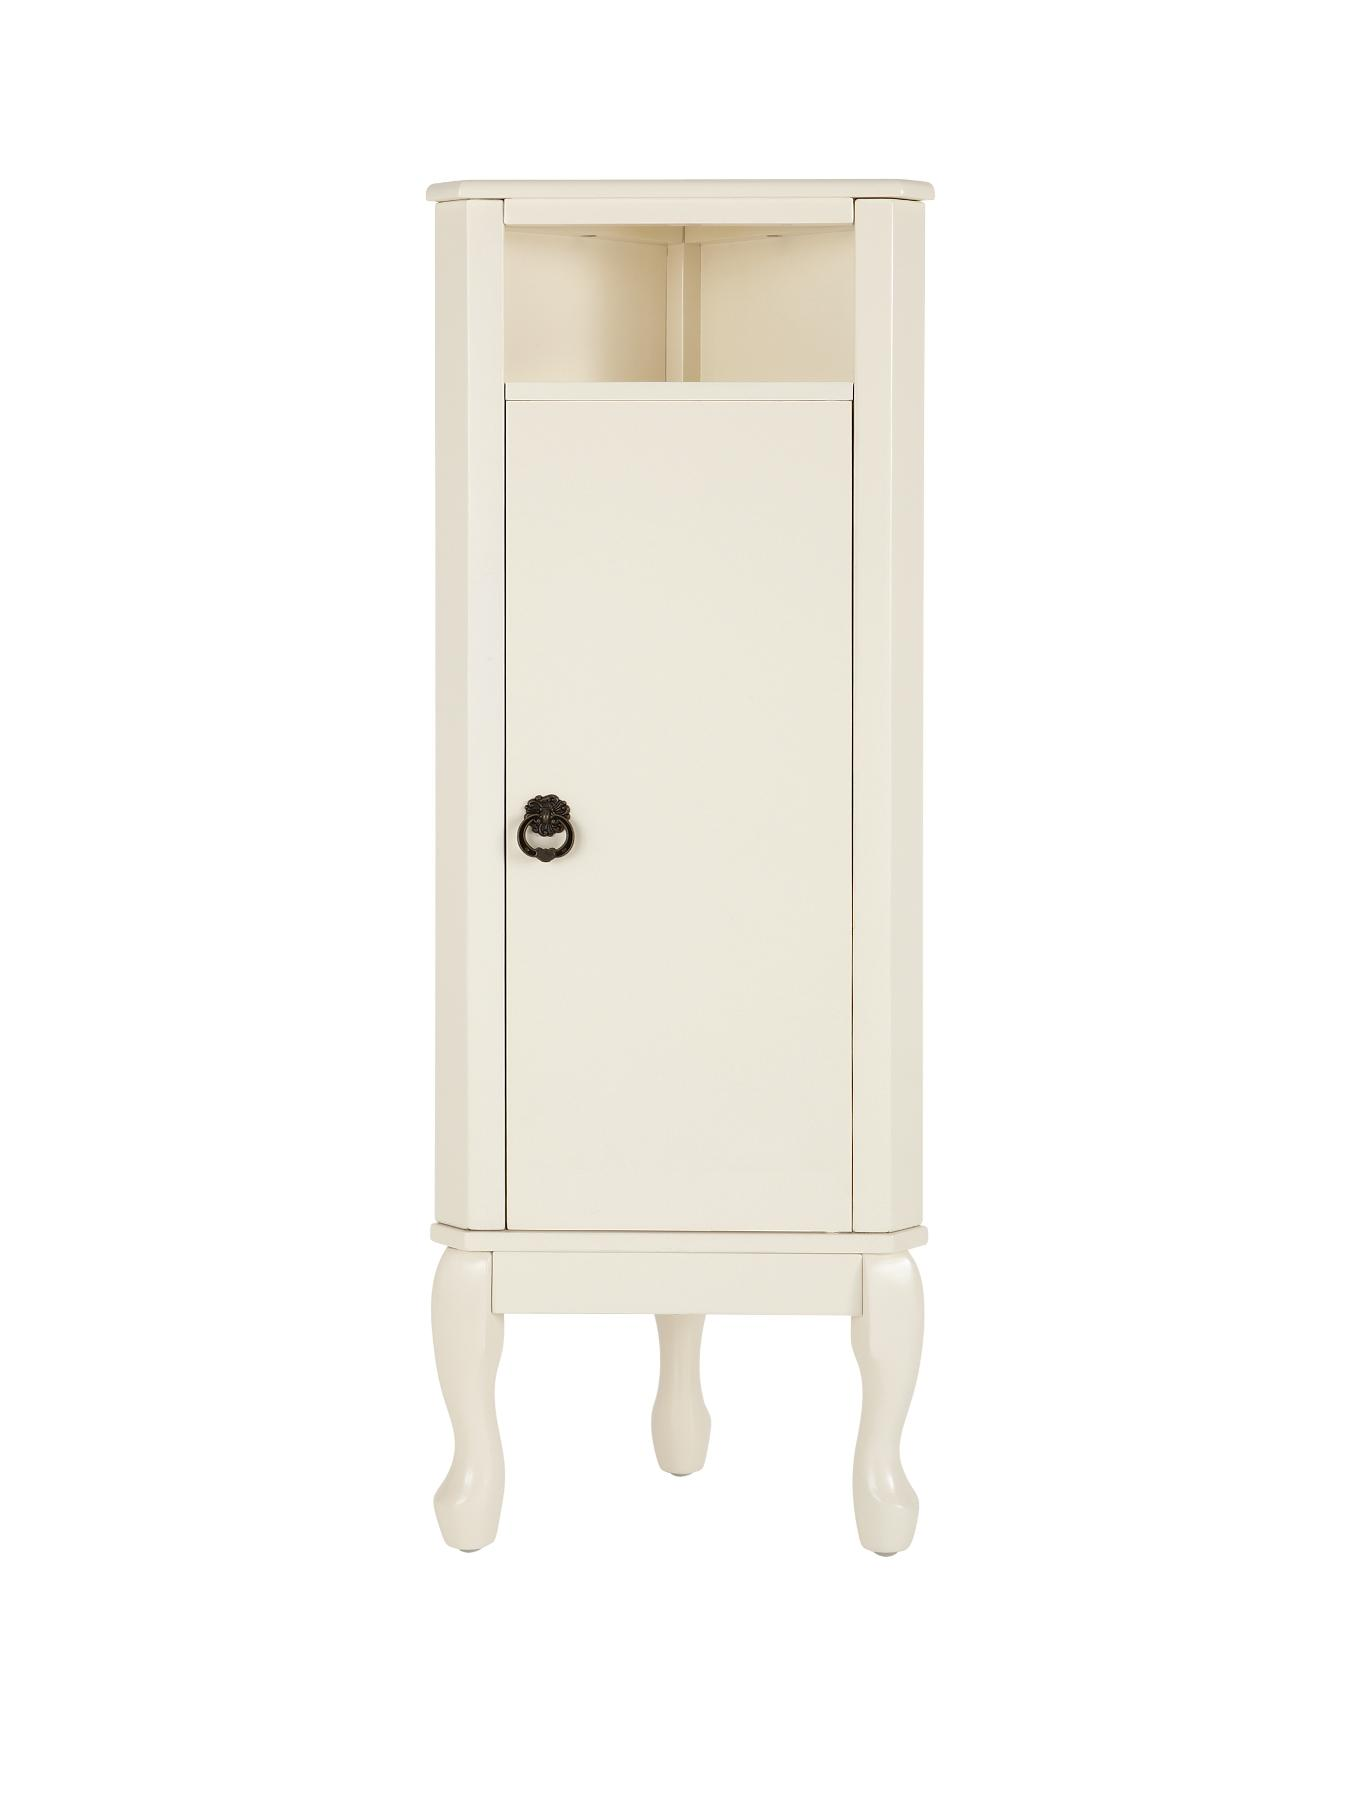 Elysee Corner Bathroom Floor Cabinet Unit Whitegrey